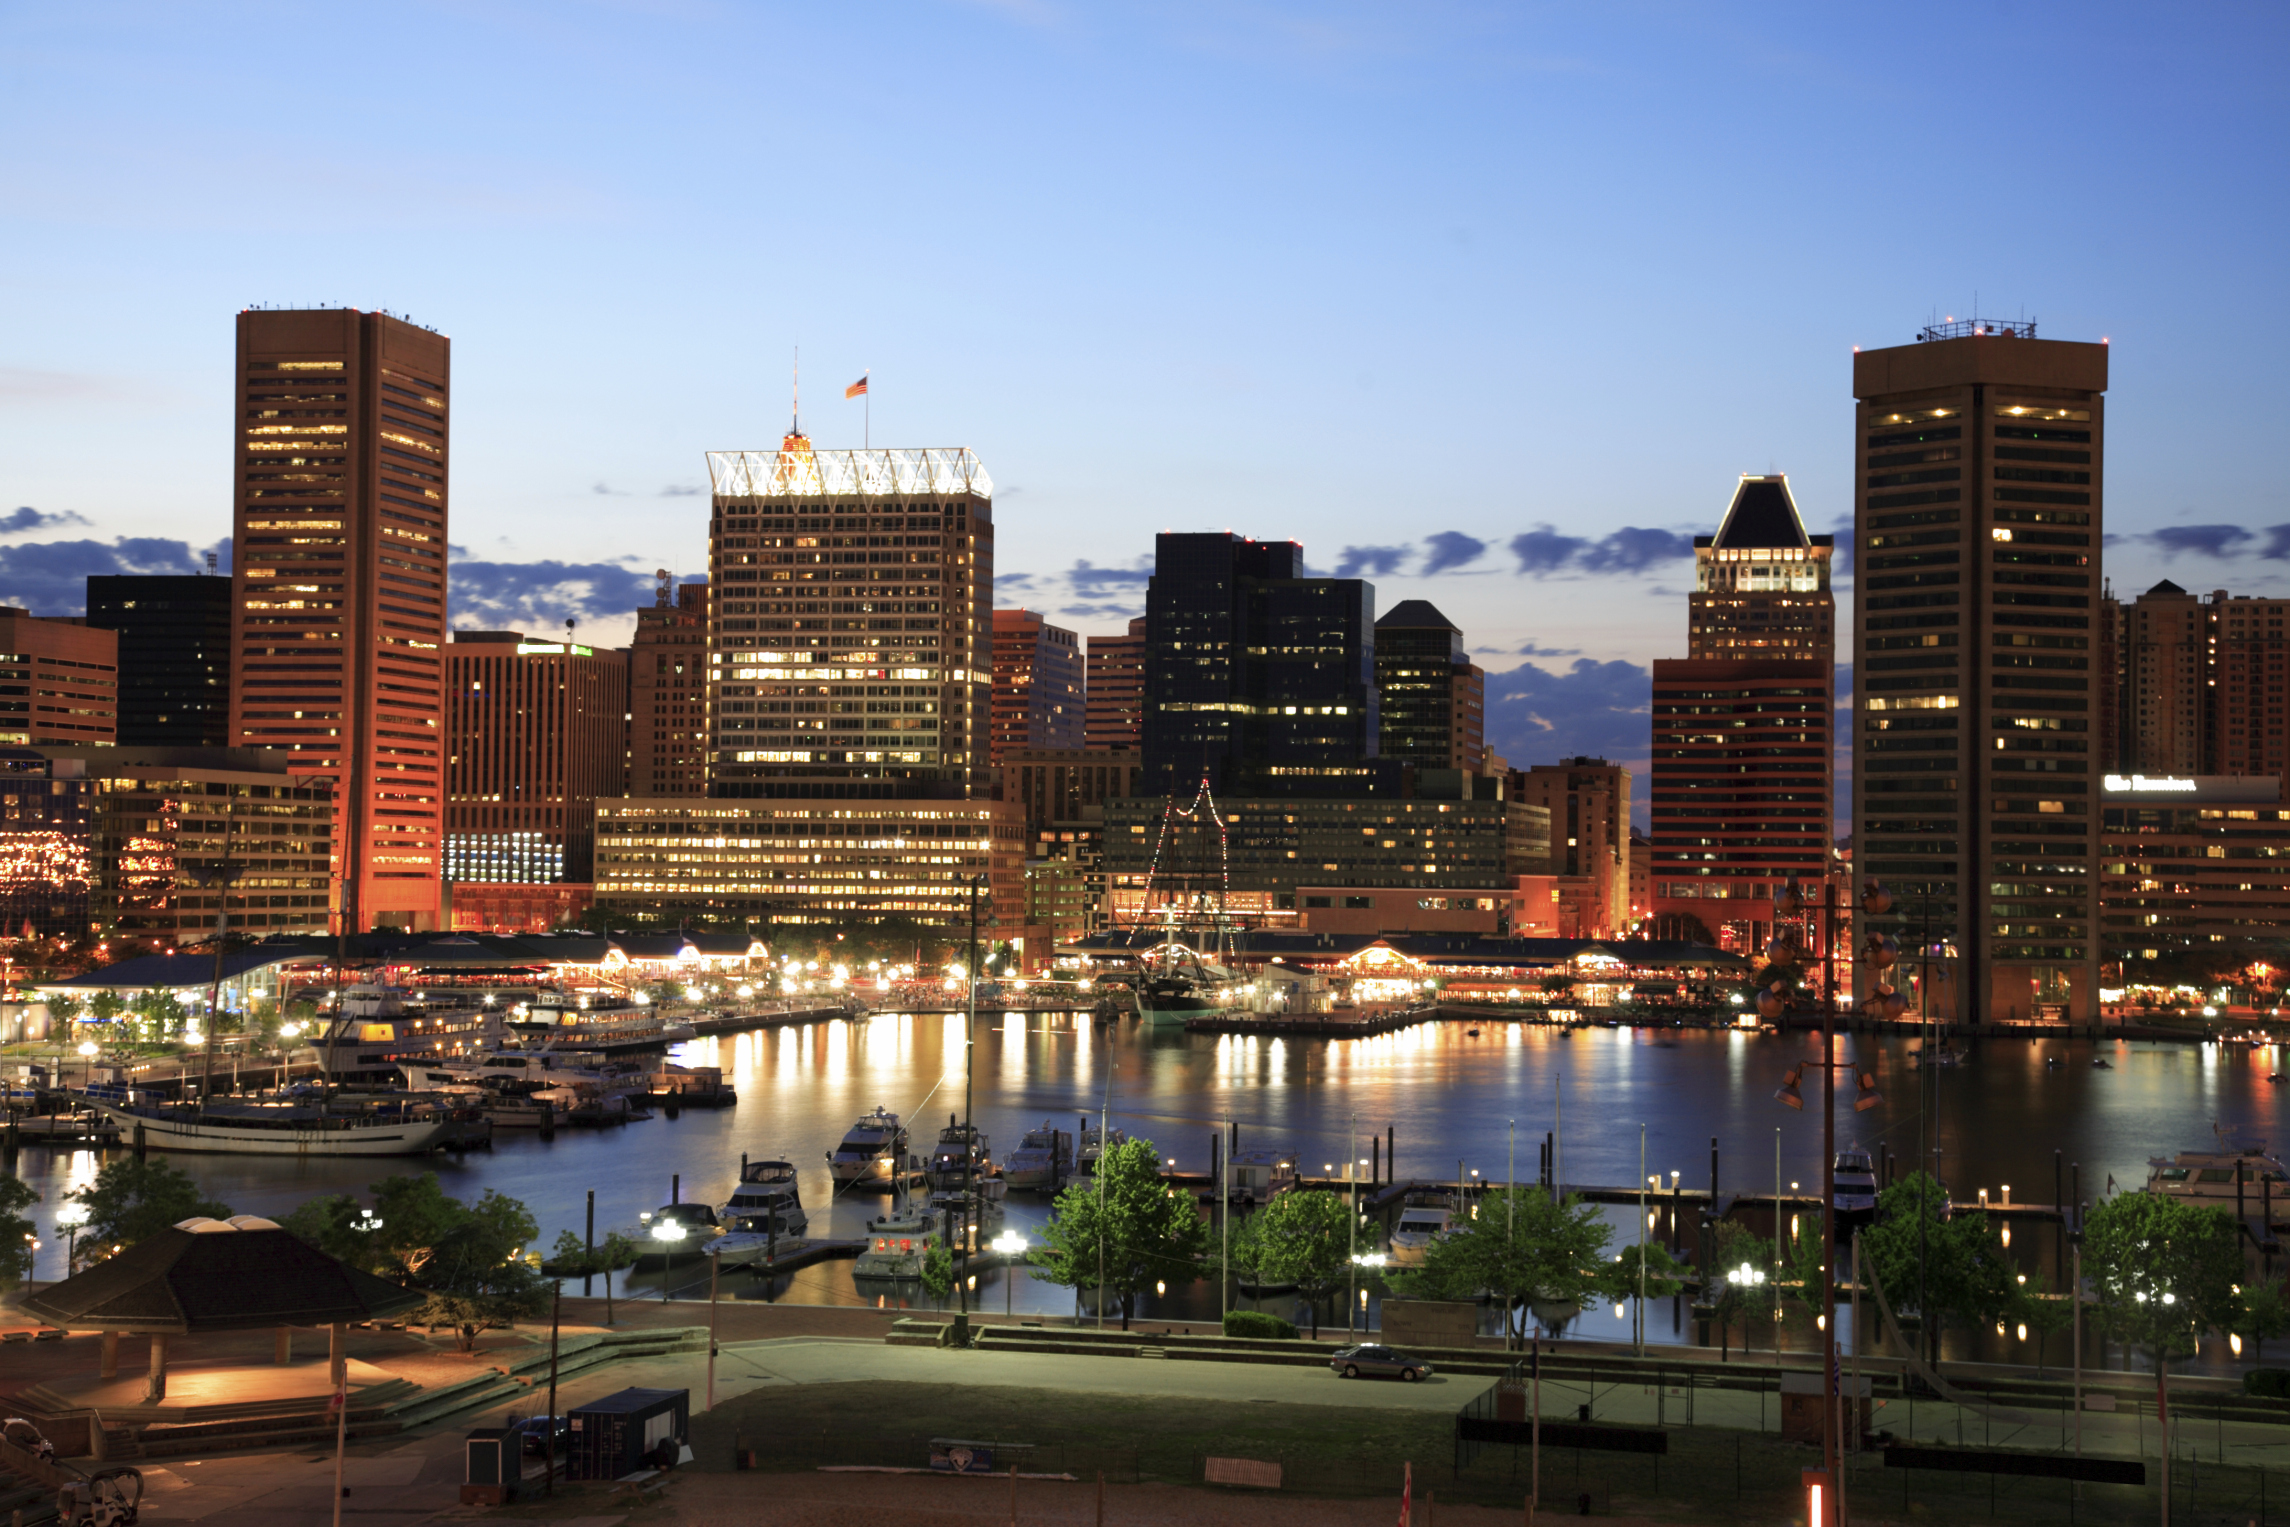 The Inner Harbor of Baltimore, Maryland